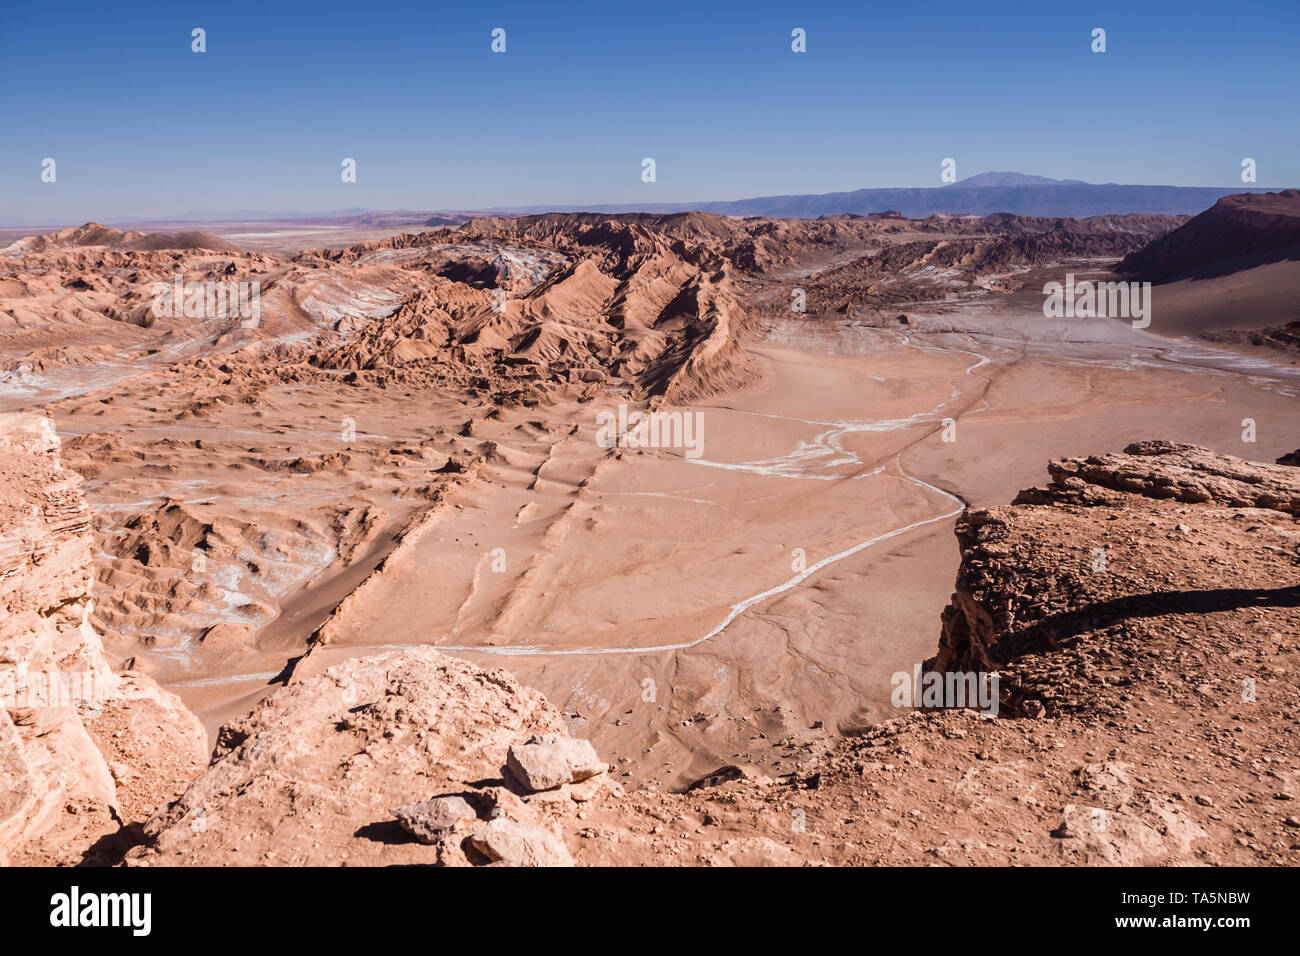 Aerial view of the Valley of the Moon in San Pedro de Atacama in northern Chile. - Stock Image